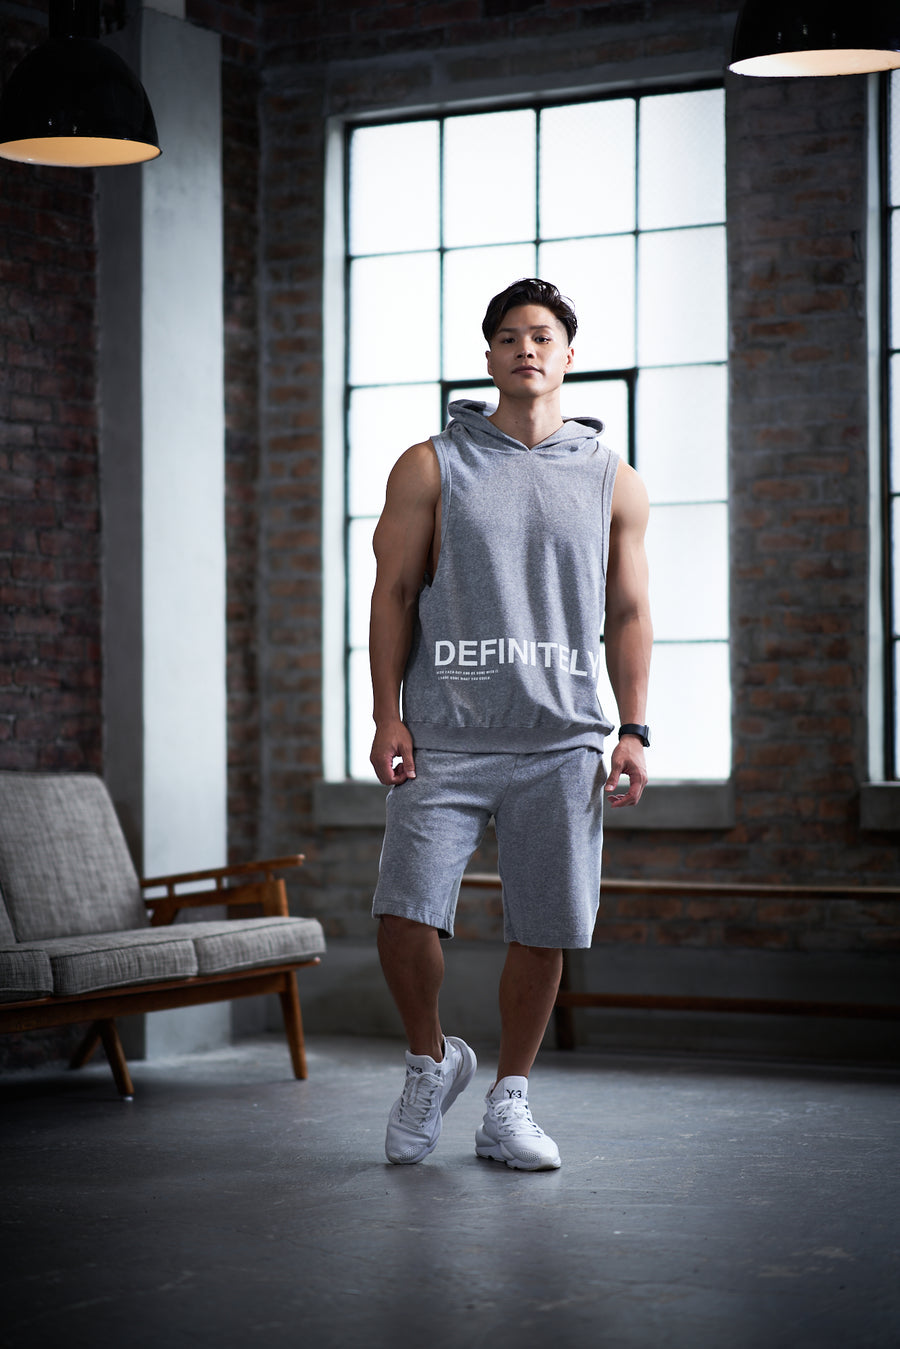 Hoodie Tank Top [DEFINITELY] - Light Gray